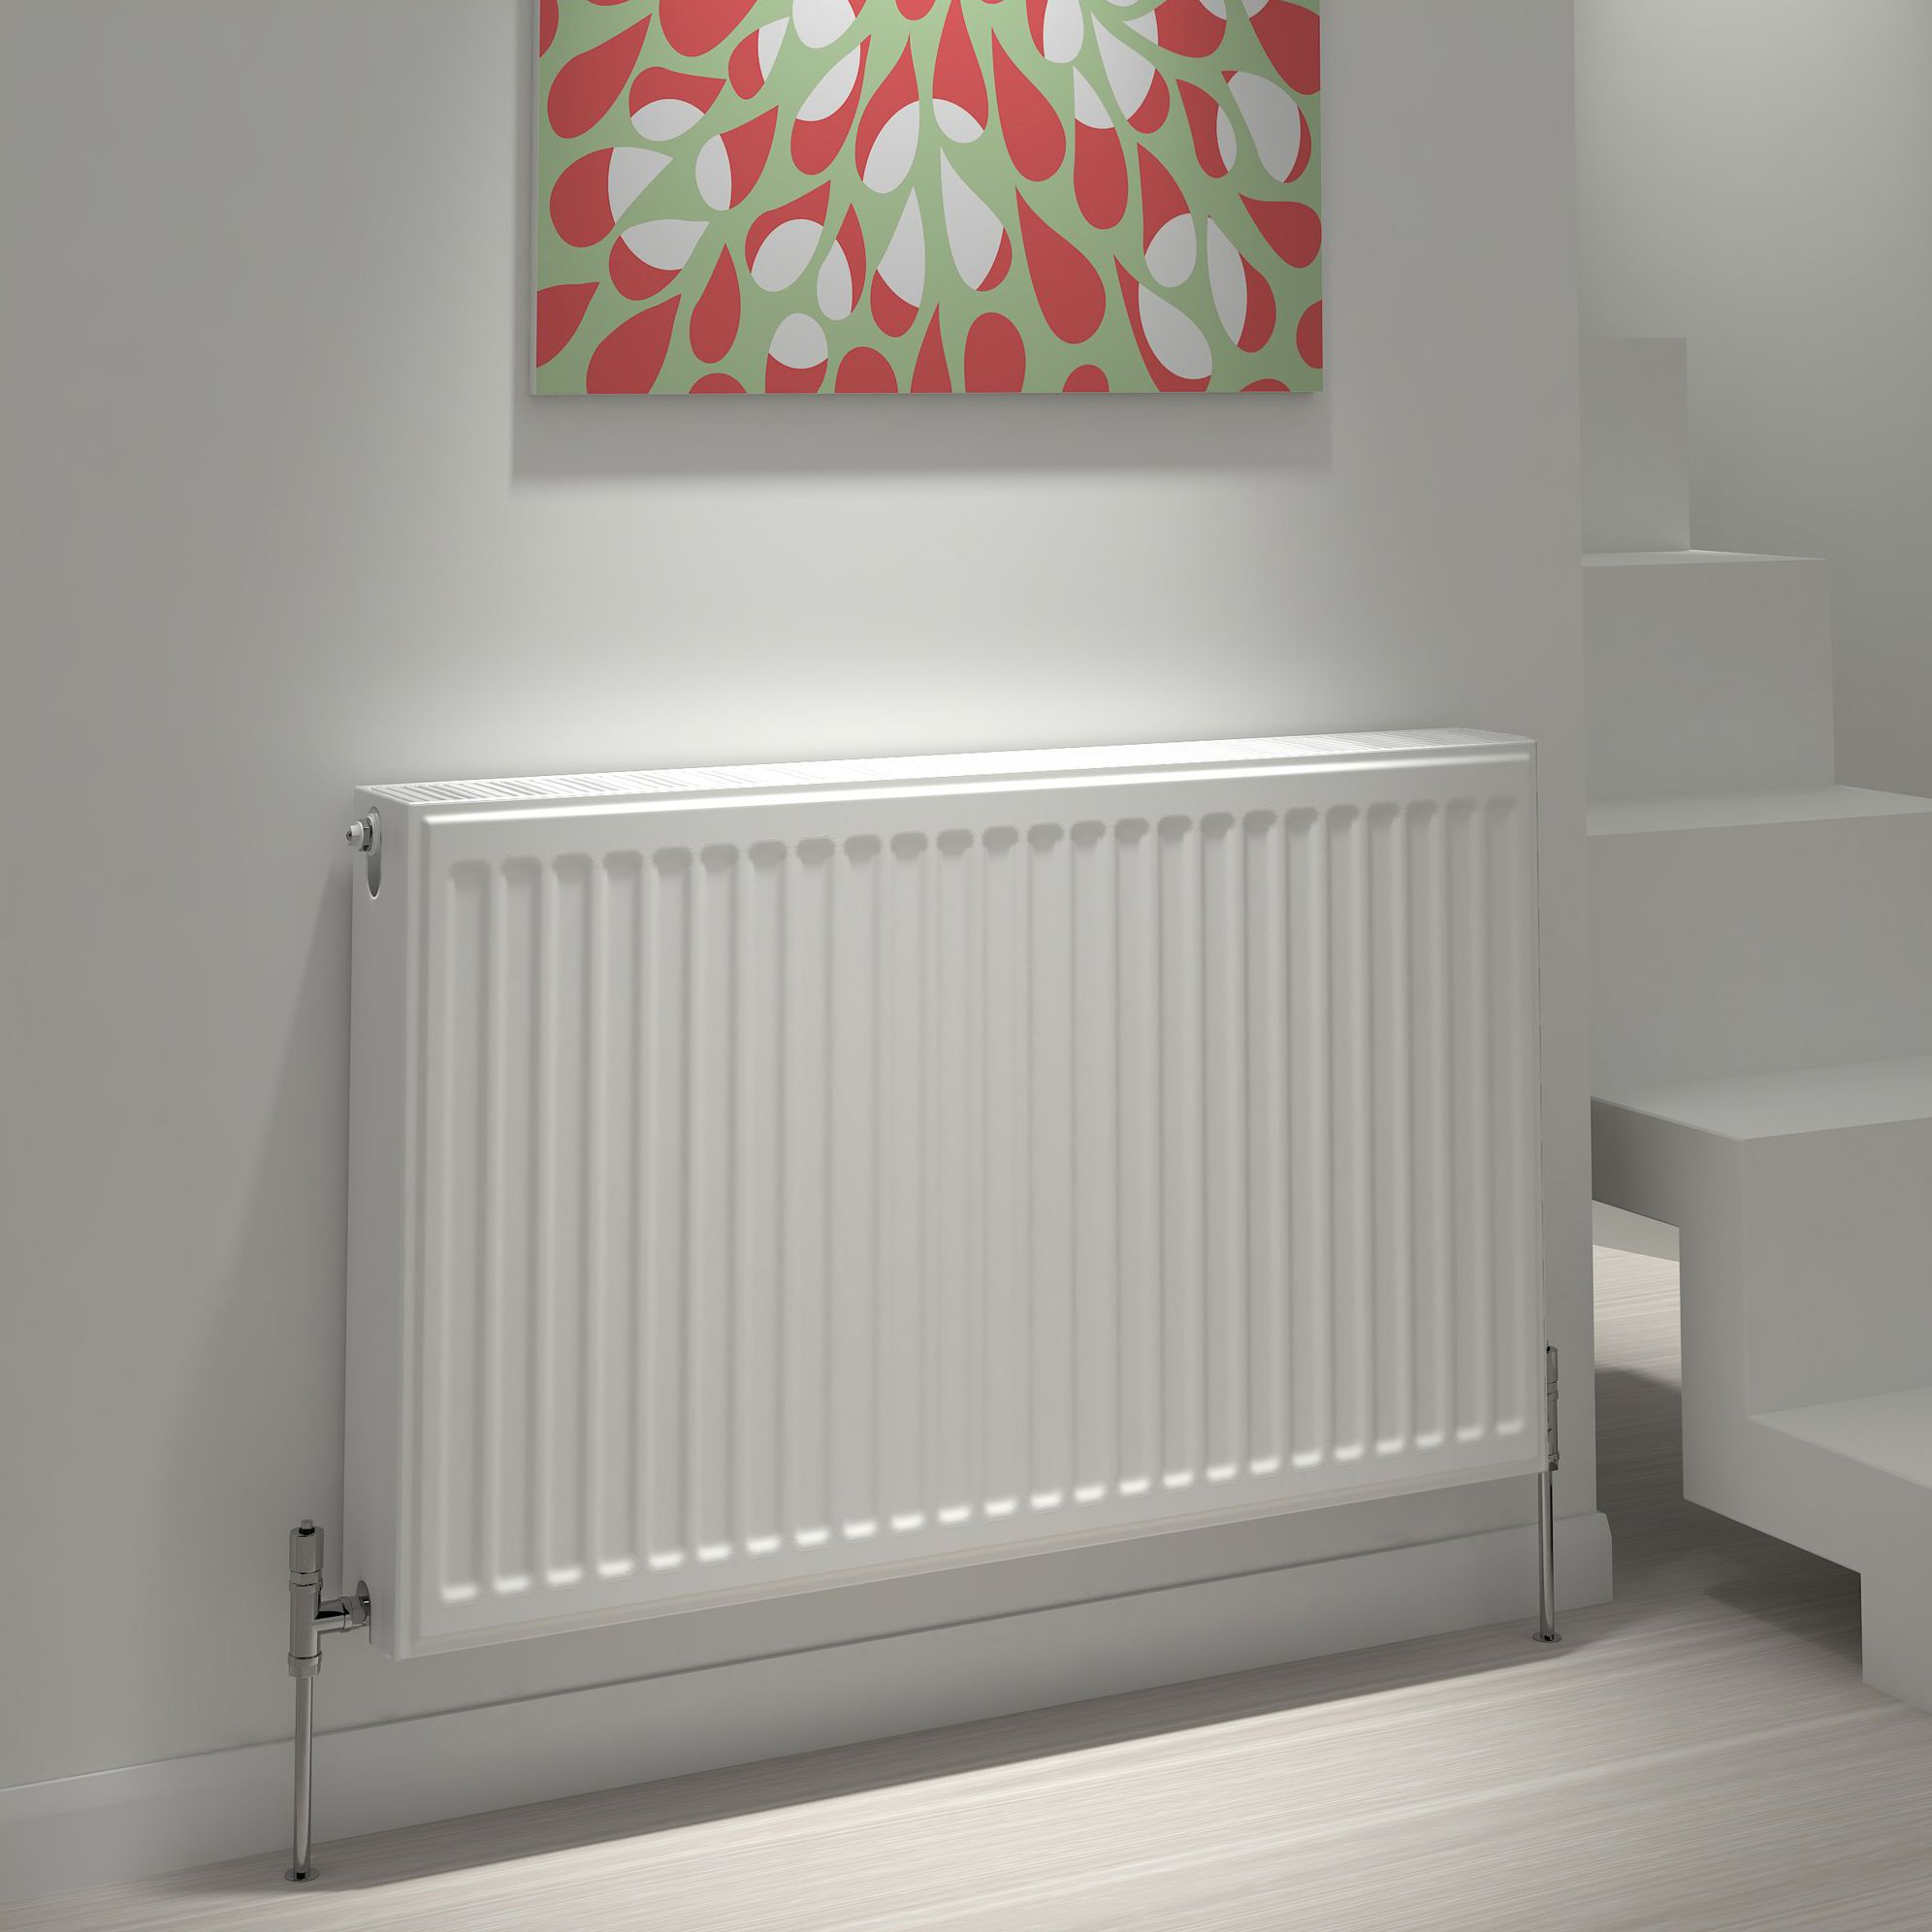 Kudox Type 22 Double Panel Radiator, (H)600mm (W)1800mm